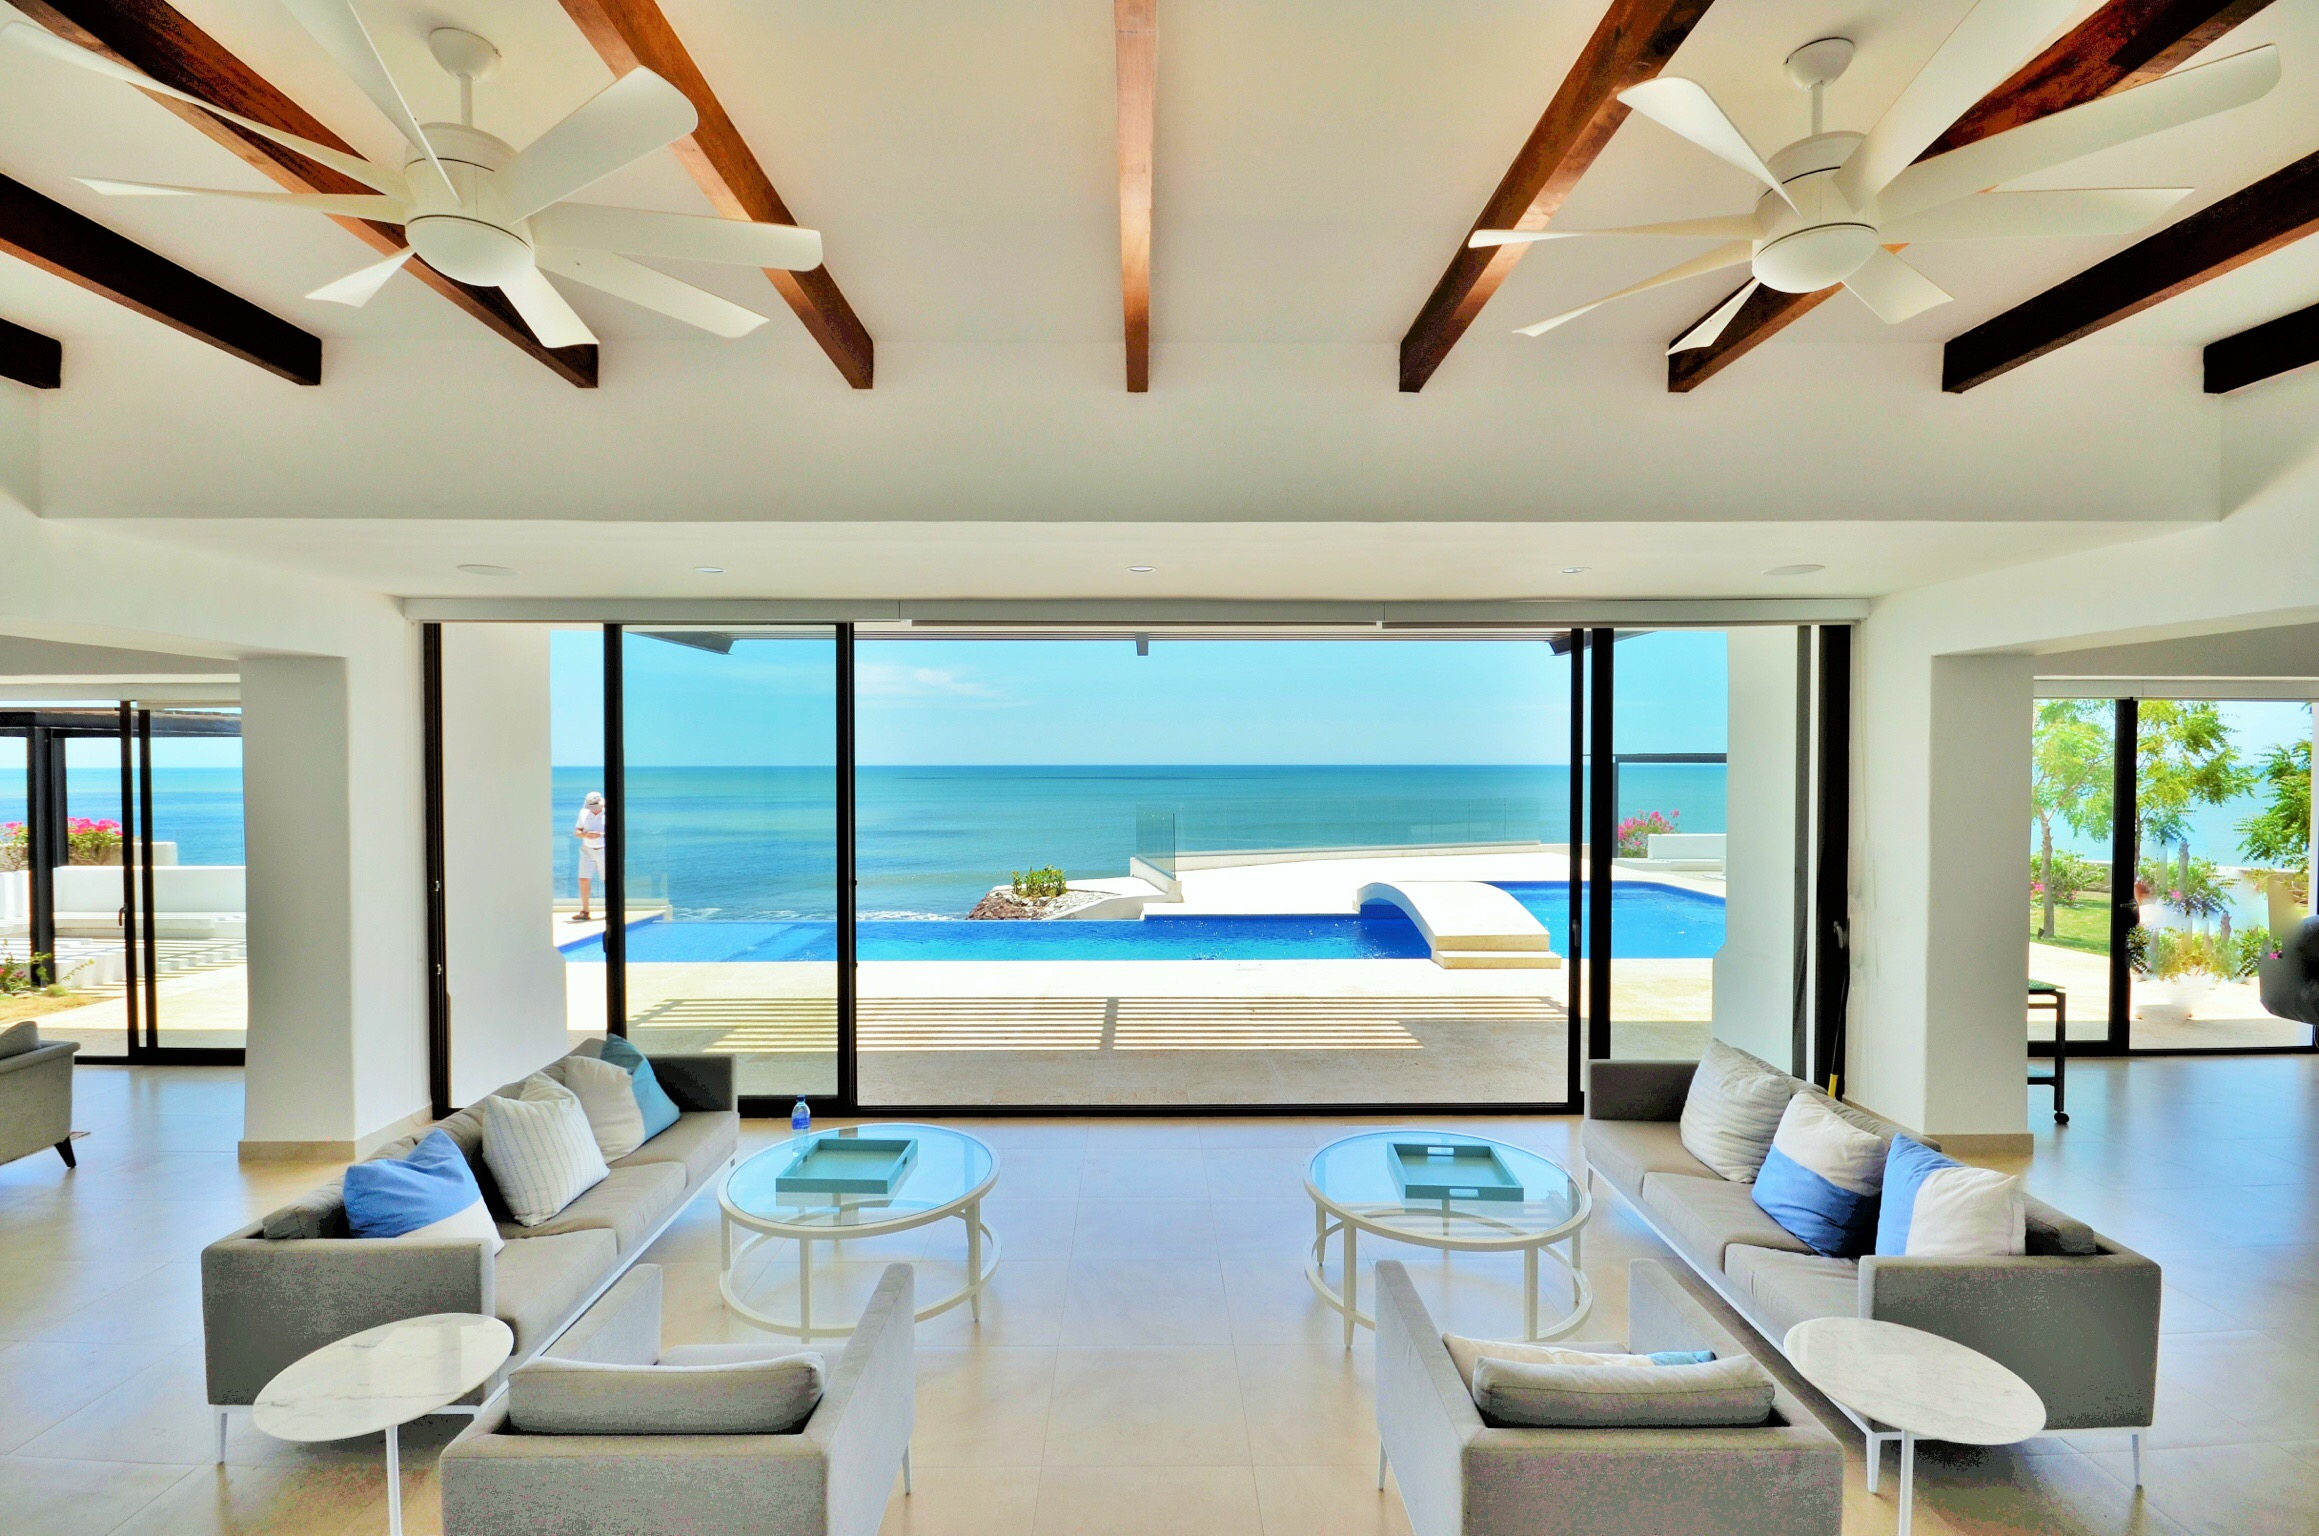 Modern beach, architect design, interior design work, Sorrento Beach Residence